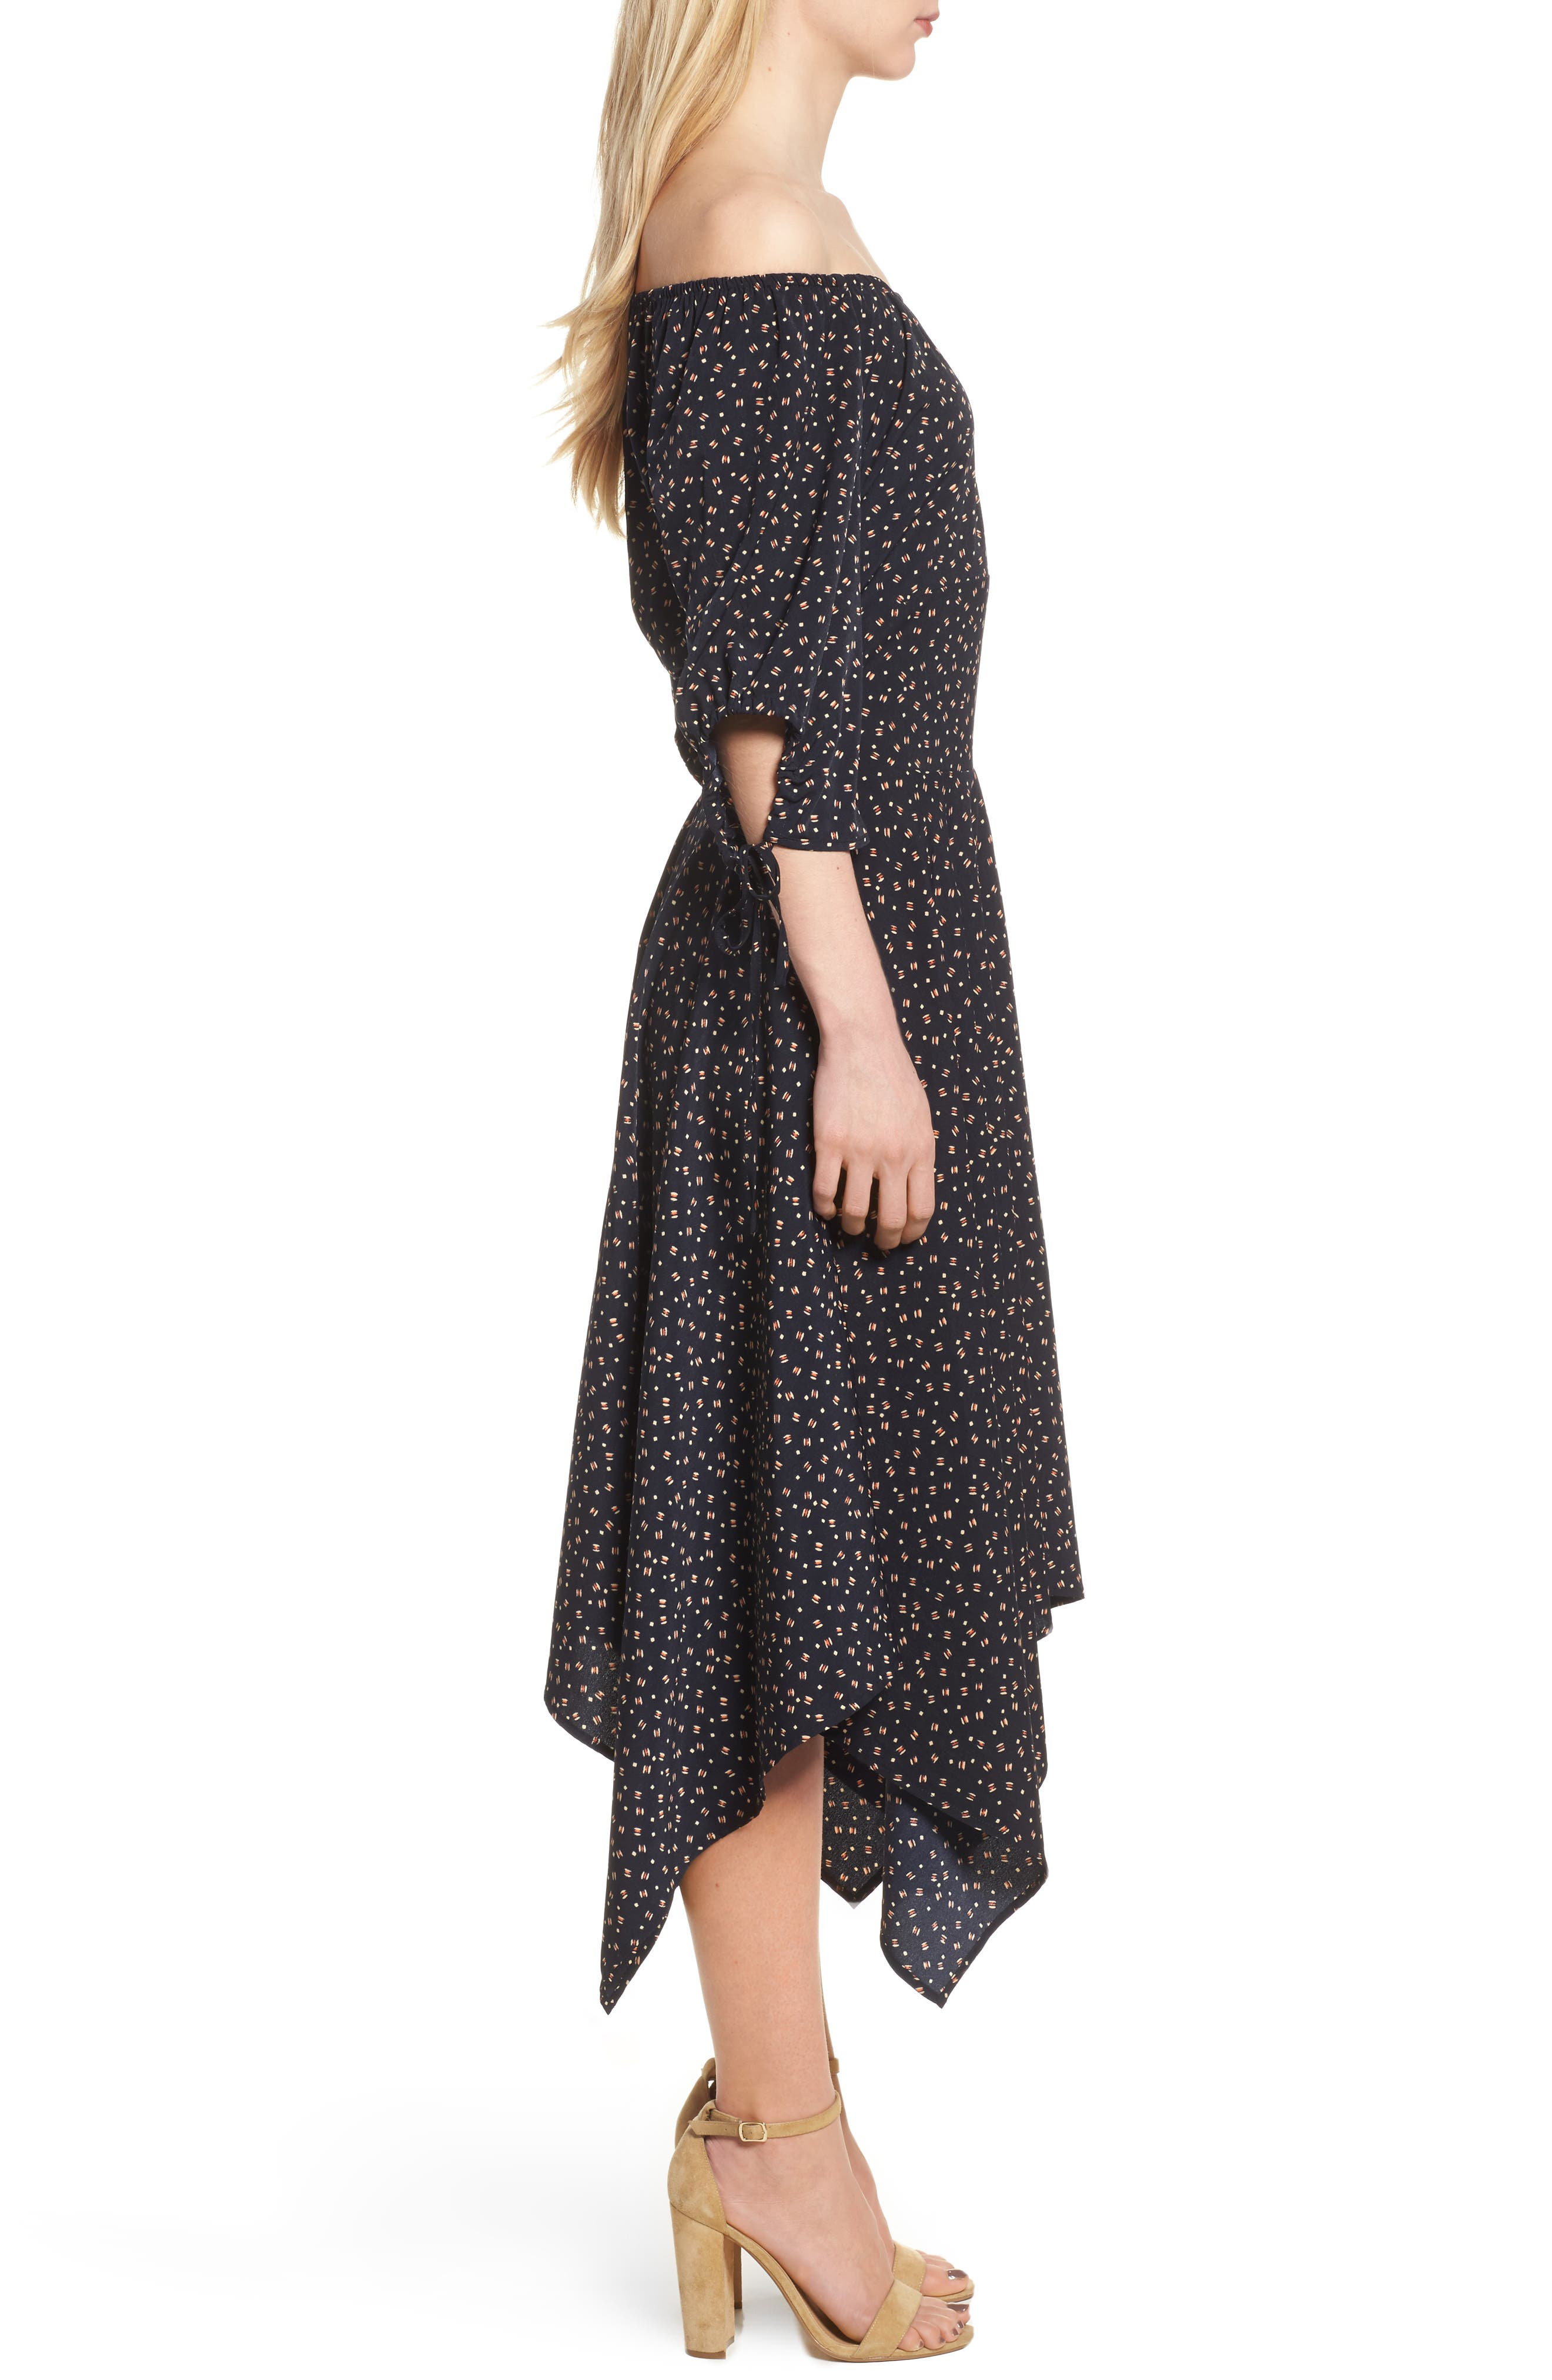 Bishop + Young Off the Shoulder Dress,                             Alternate thumbnail 3, color,                             Navy Print